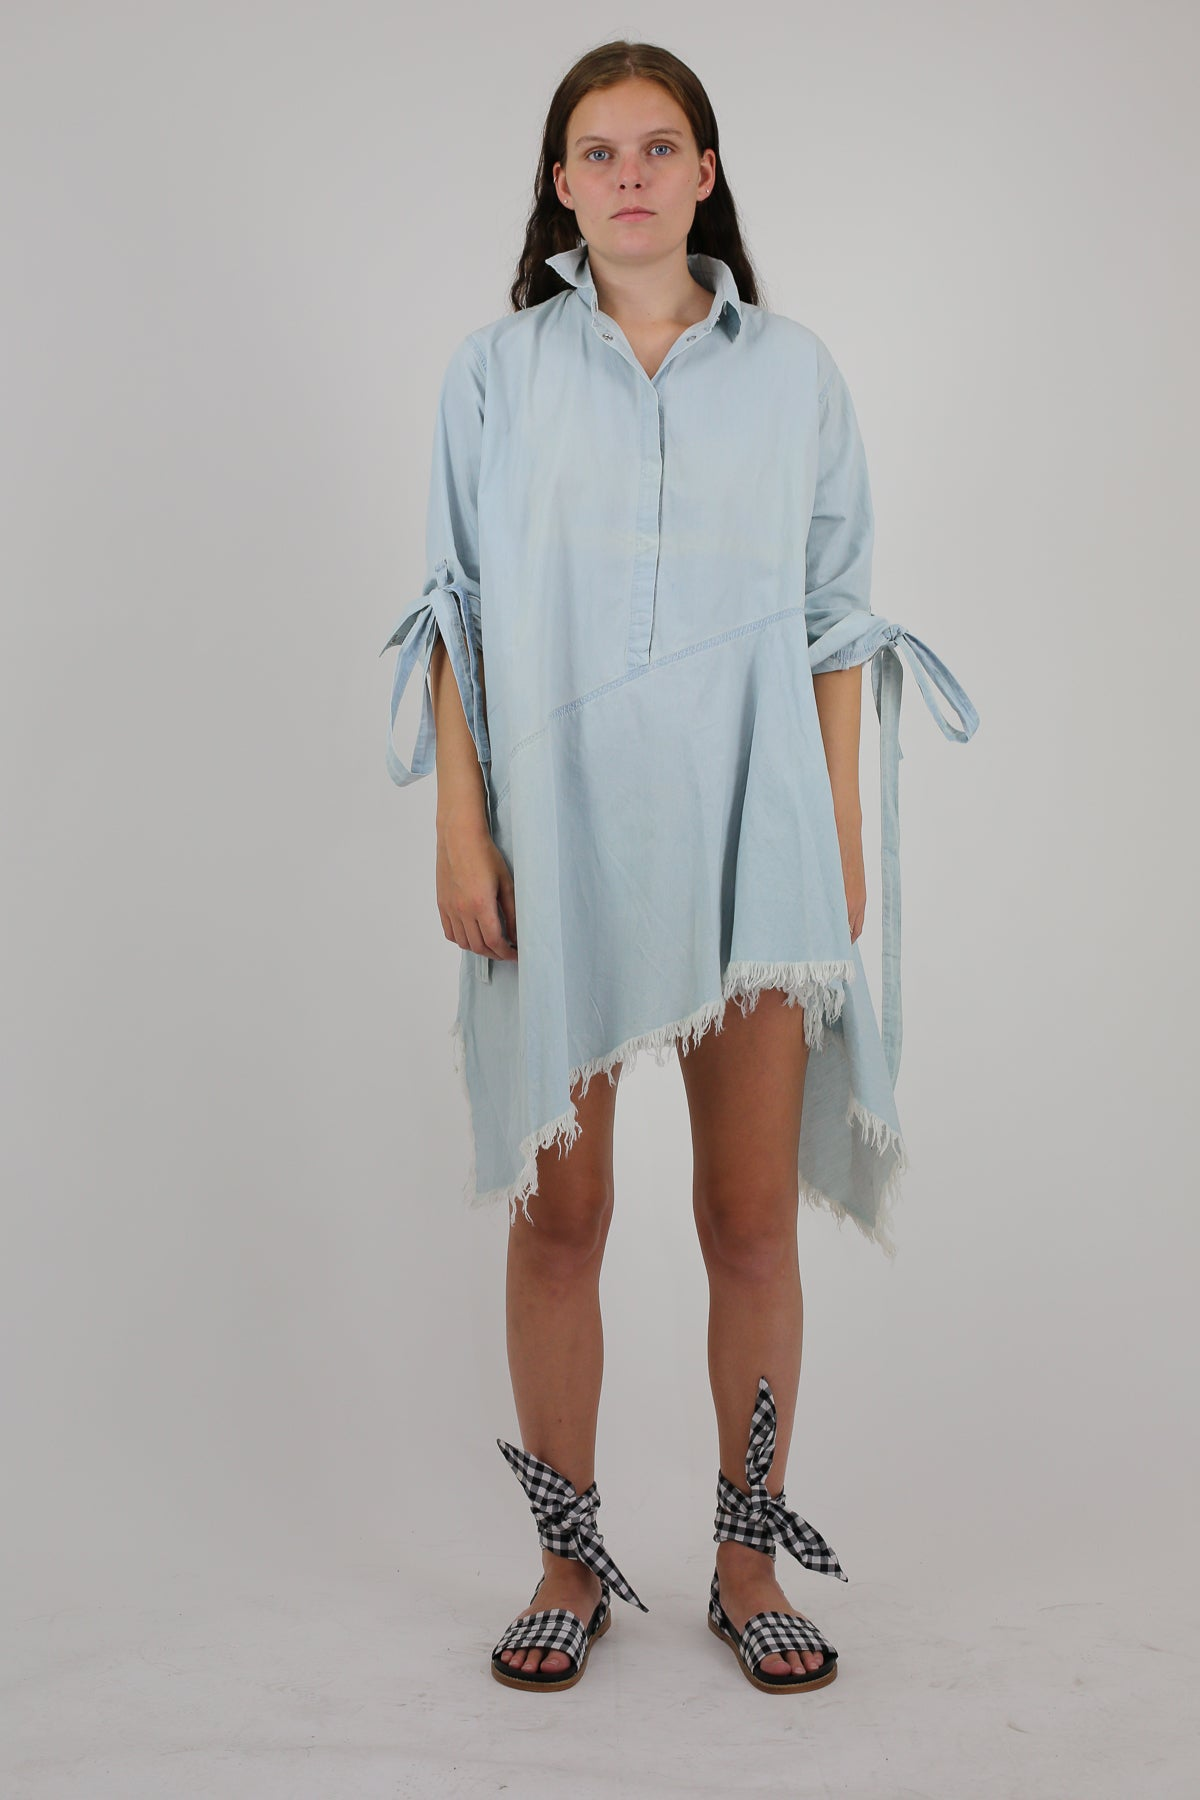 PRE-OWNED / BABY BLUE SHIRT DRESS WITH BACK TIES - marques-almeida-dev